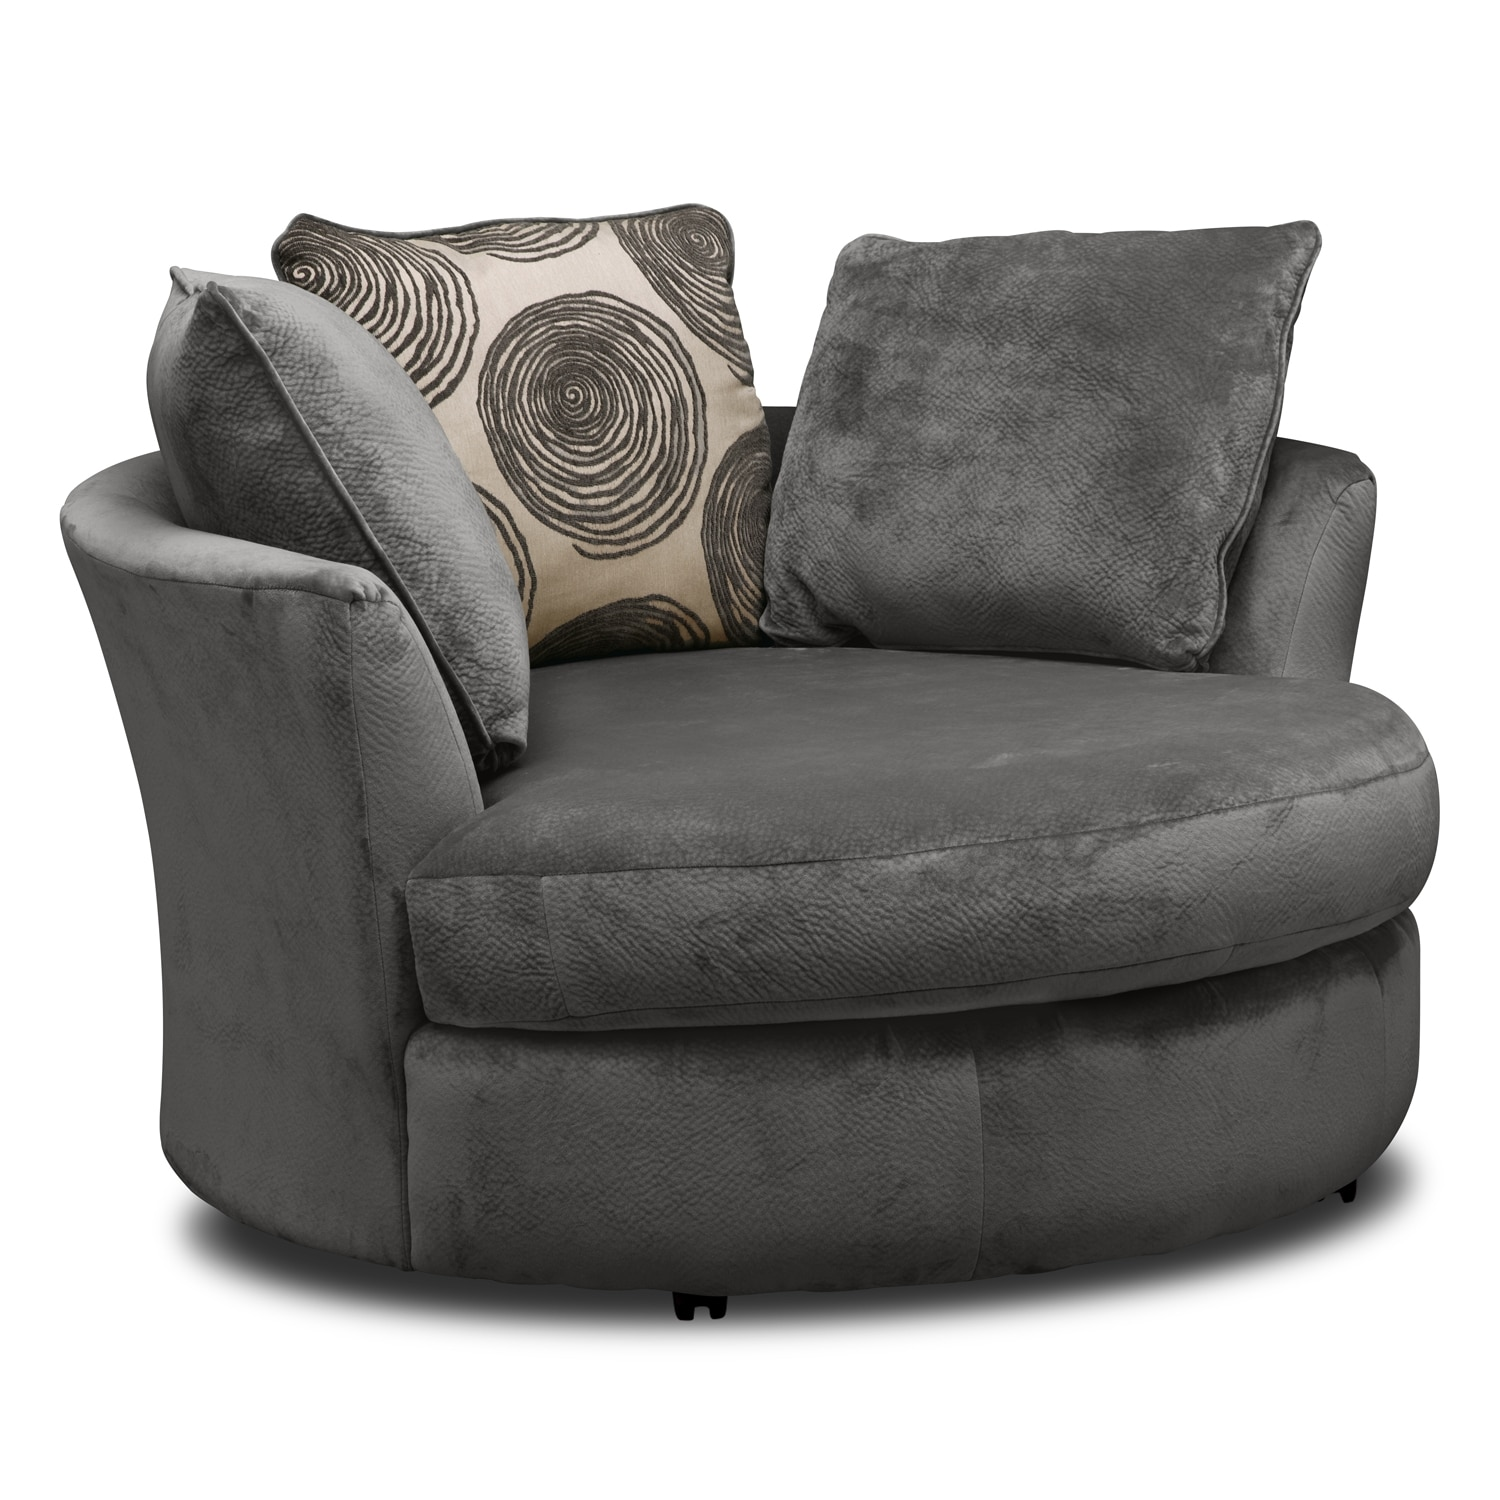 Cordelle Swivel Chair